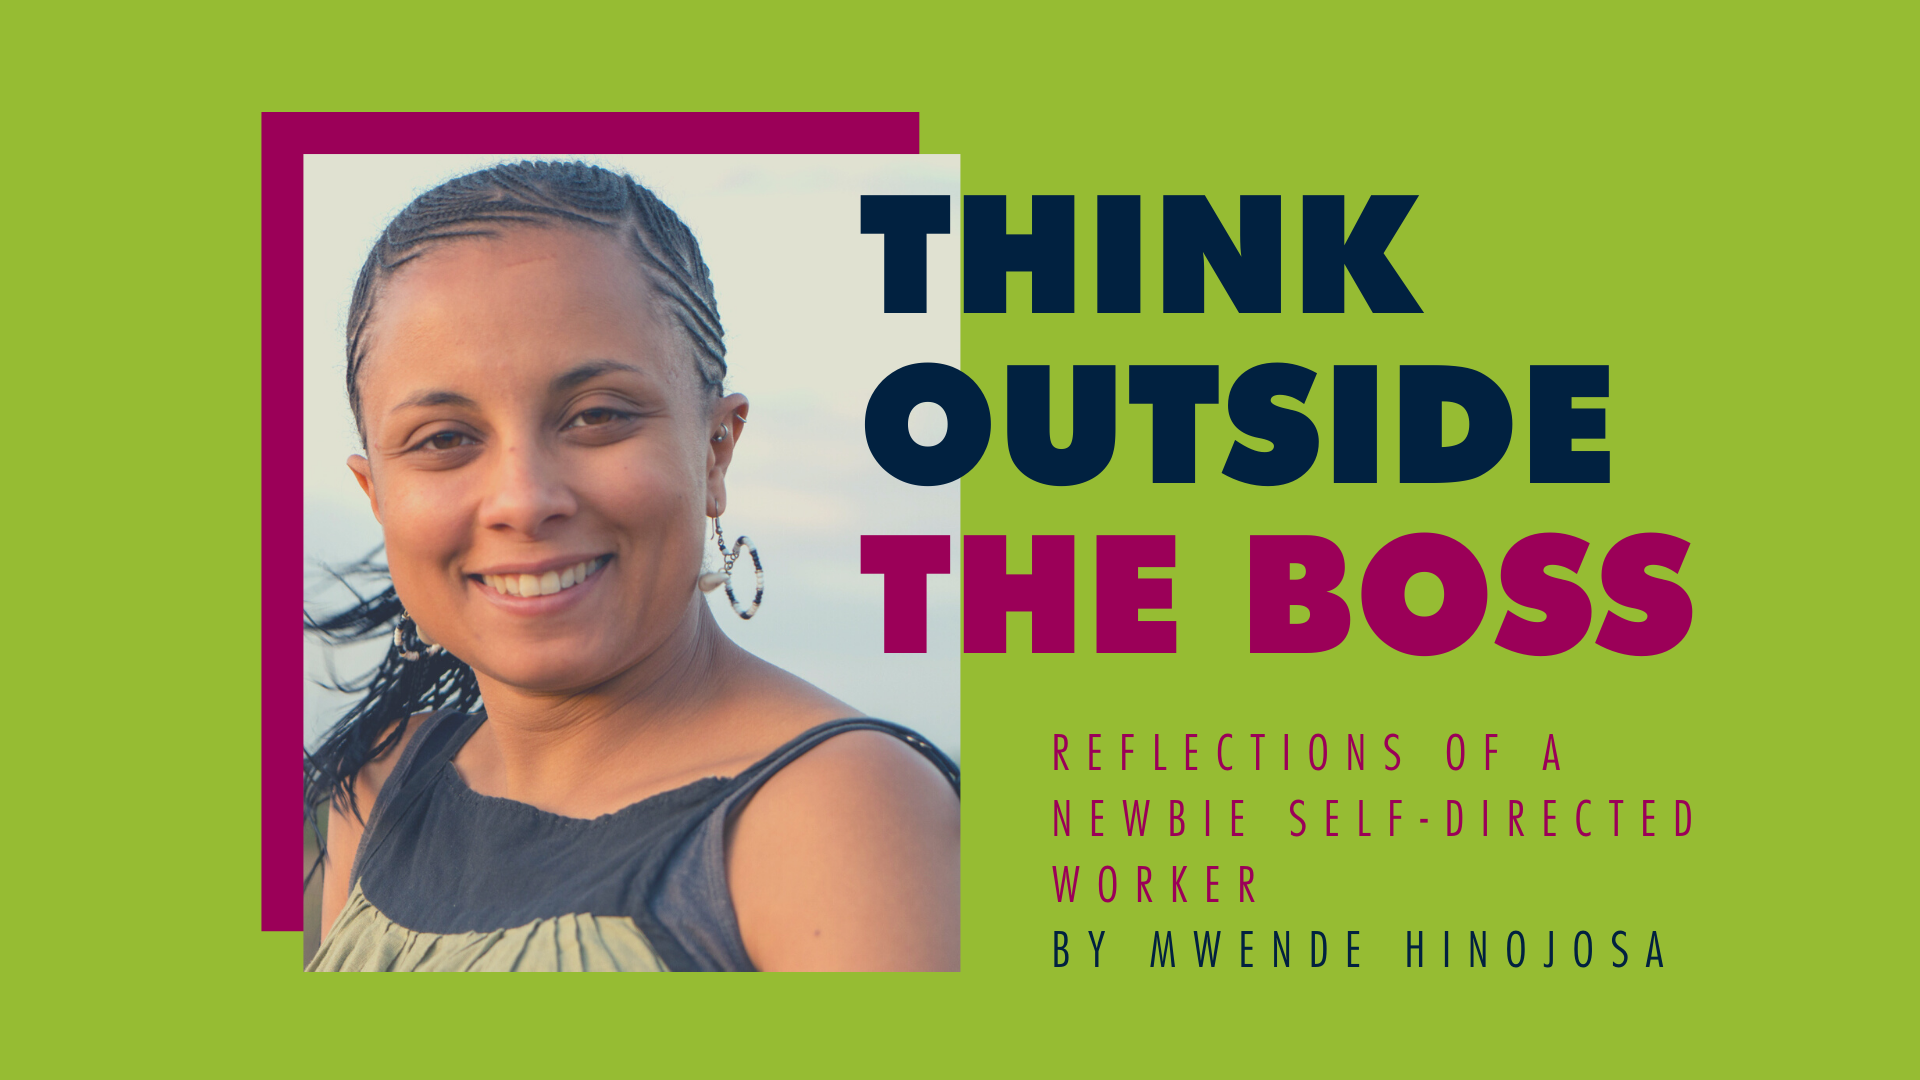 Think Outside the Boss blog series